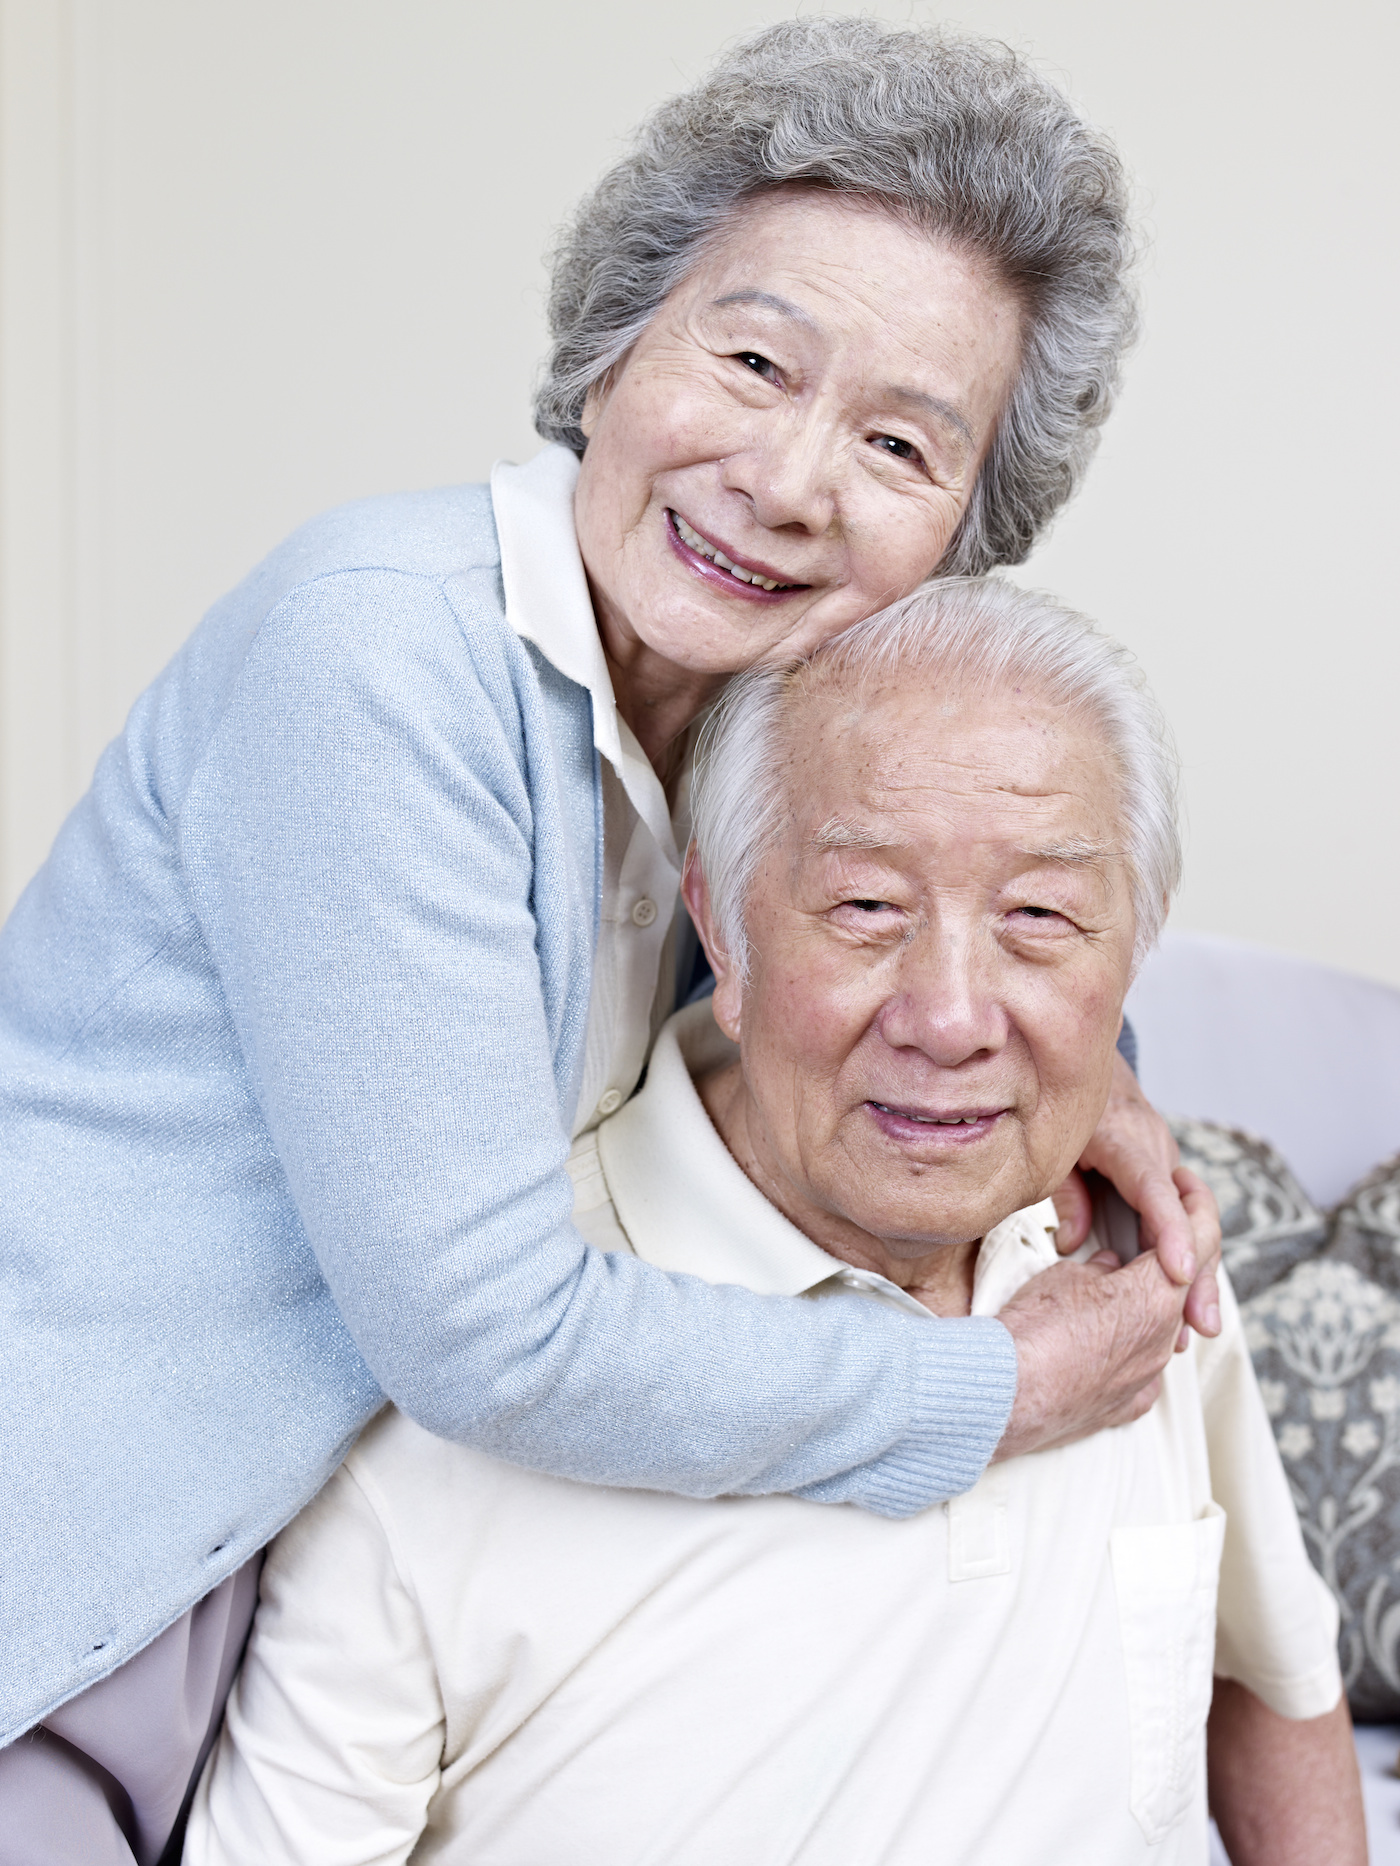 Elderly Asian couple smiling together